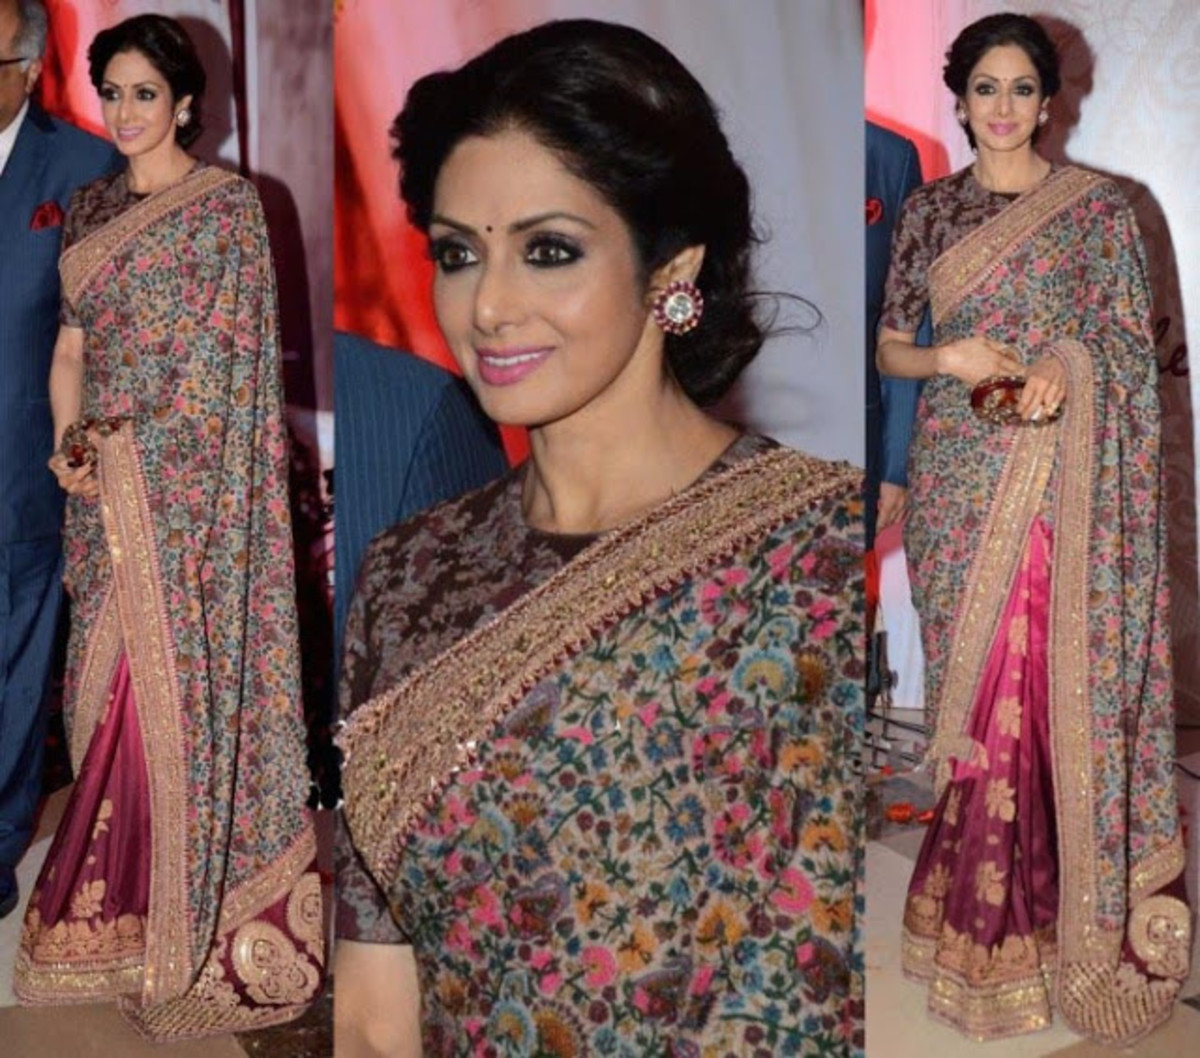 Sridevi's floral printed outfit